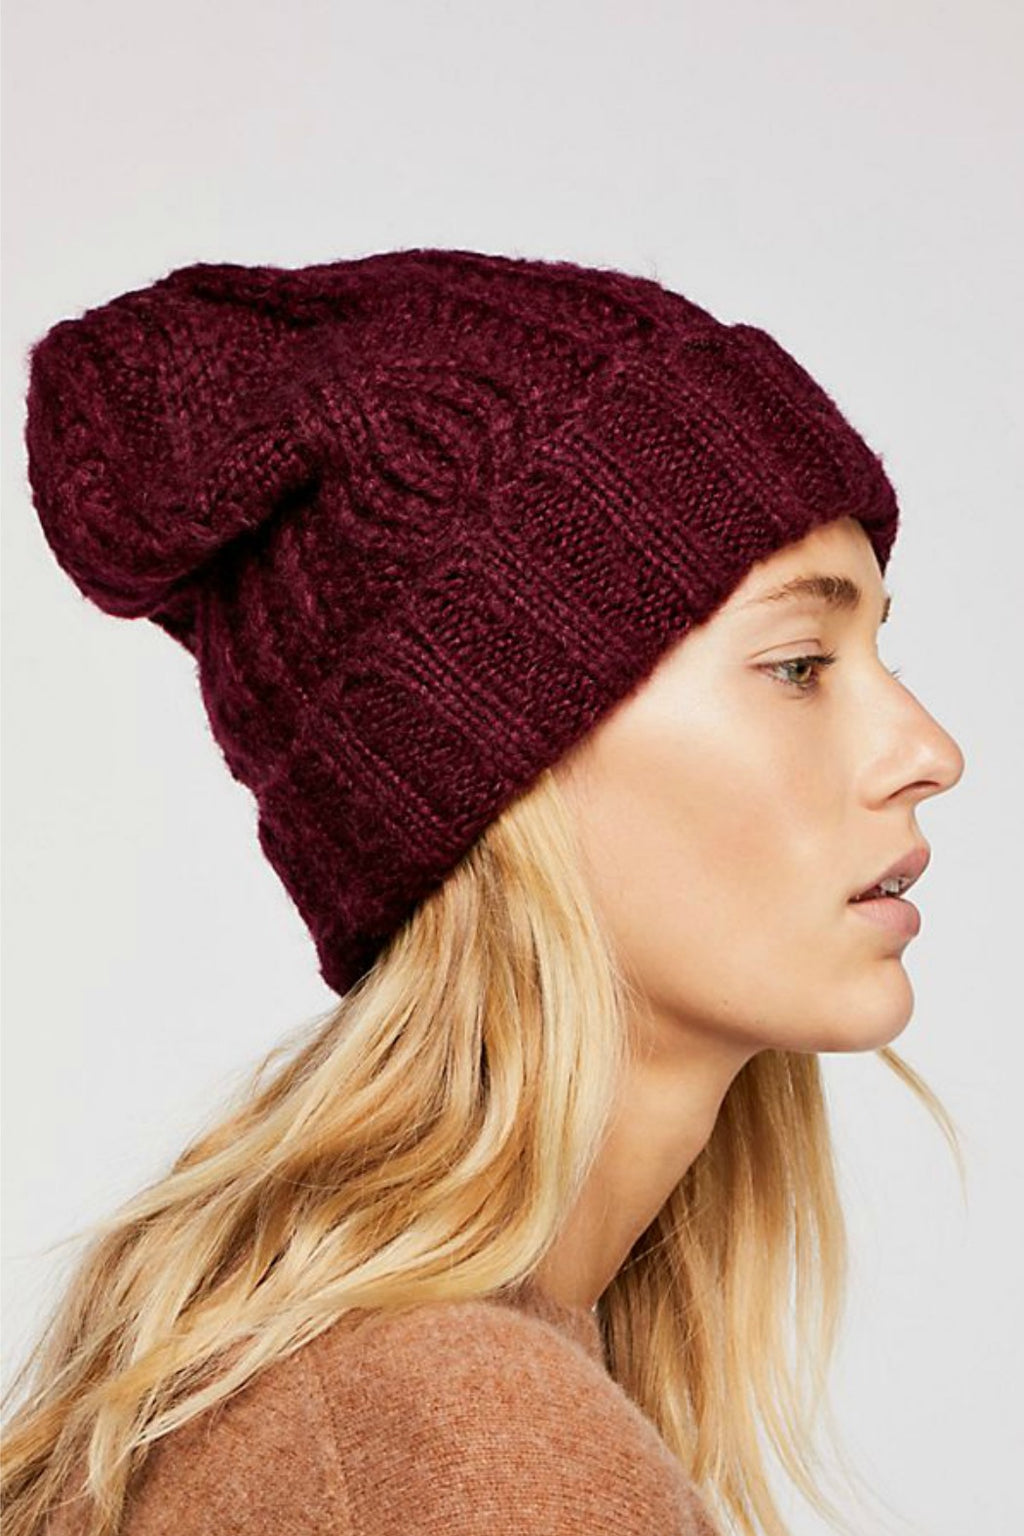 Free People Harlow Cable Knit Beanie in Wine